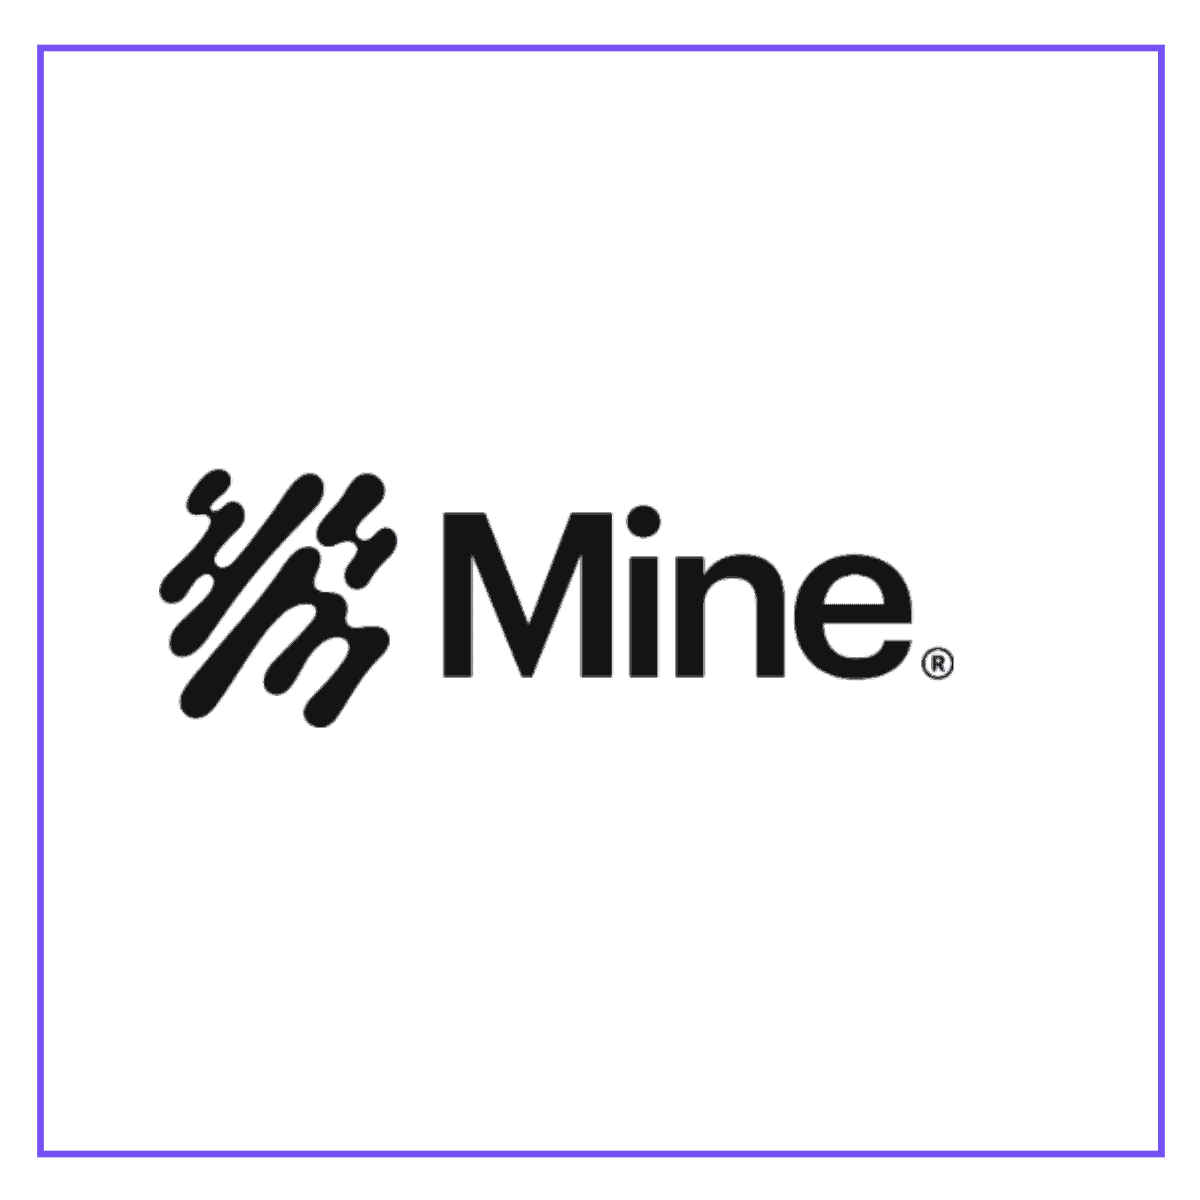 Mine ⎯ Helping Consumers Take Control of Their Digital Footprint